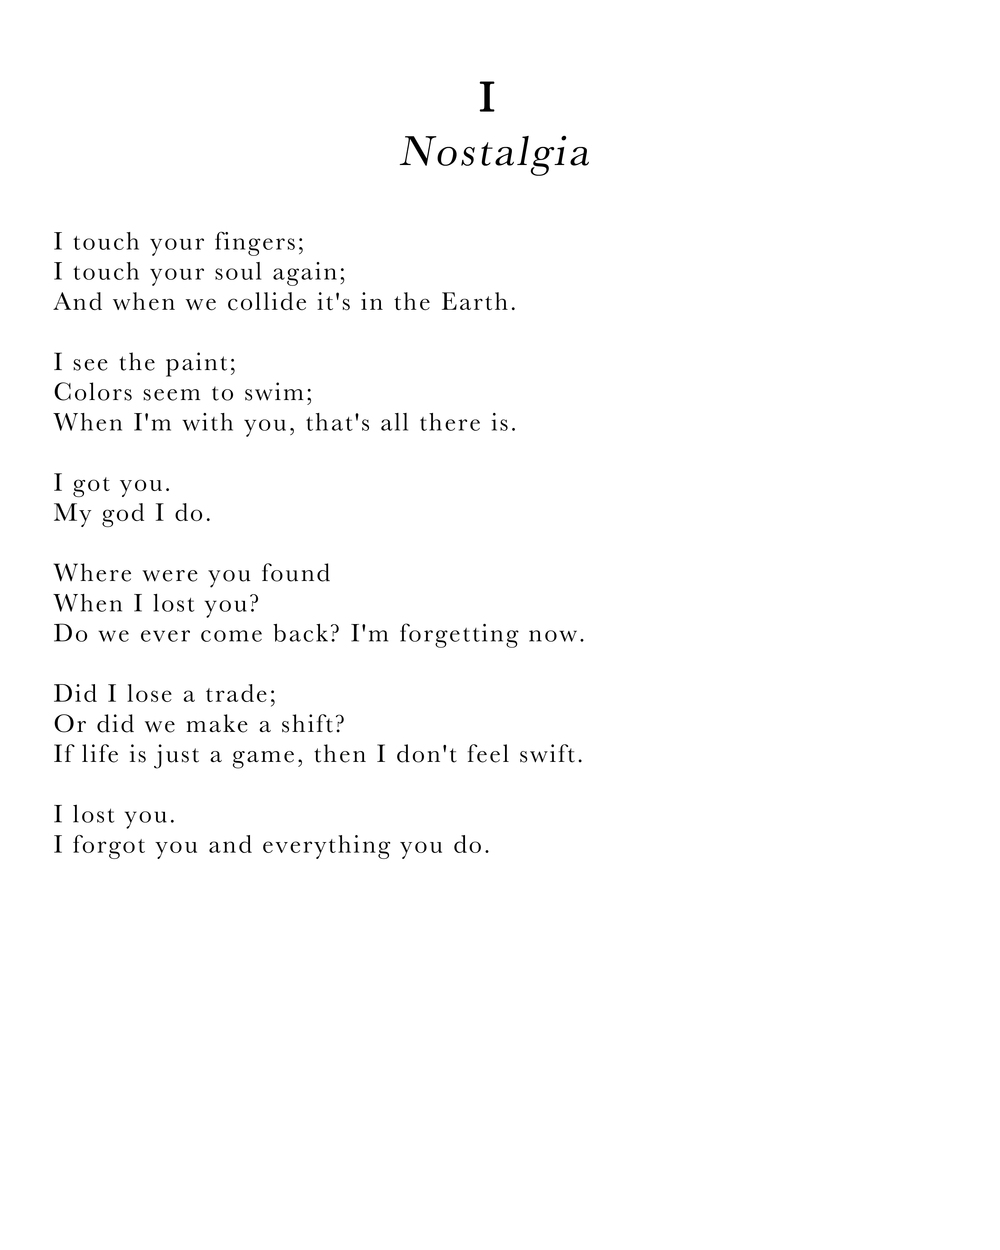 """Nostalgia"" lyrics as written in poem format."